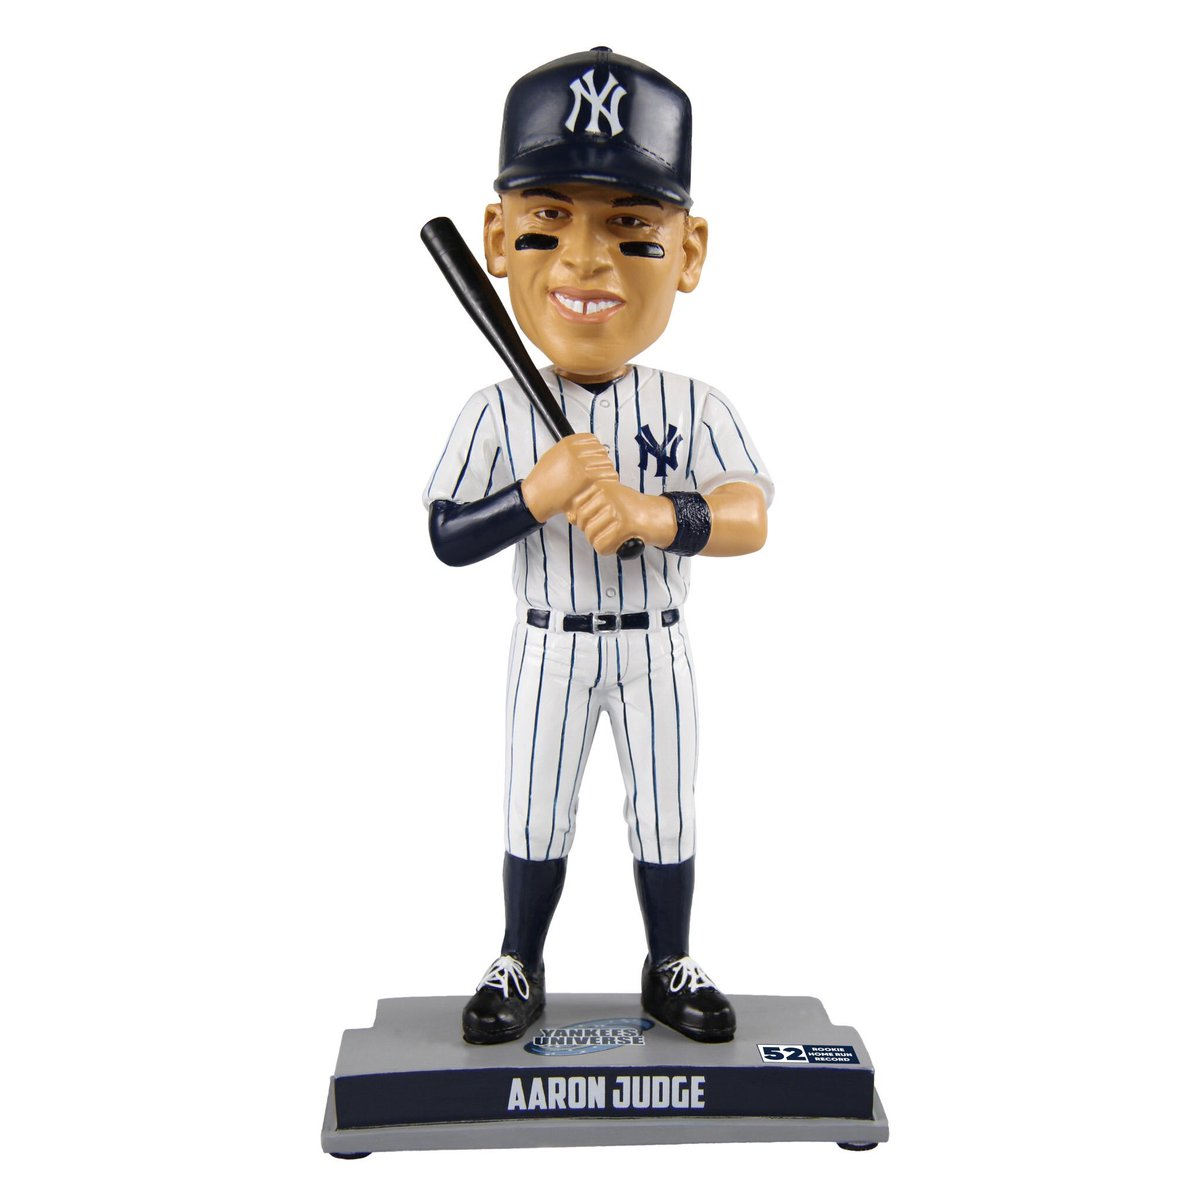 The 2nd half of the season is right around the corner and there's still time to become a part of Yankees Universe. Join as an MVP or Rookie member and receive a bobblehead of All-Star slugger Aaron Judge! https://t.co/XUjYuLA3o7